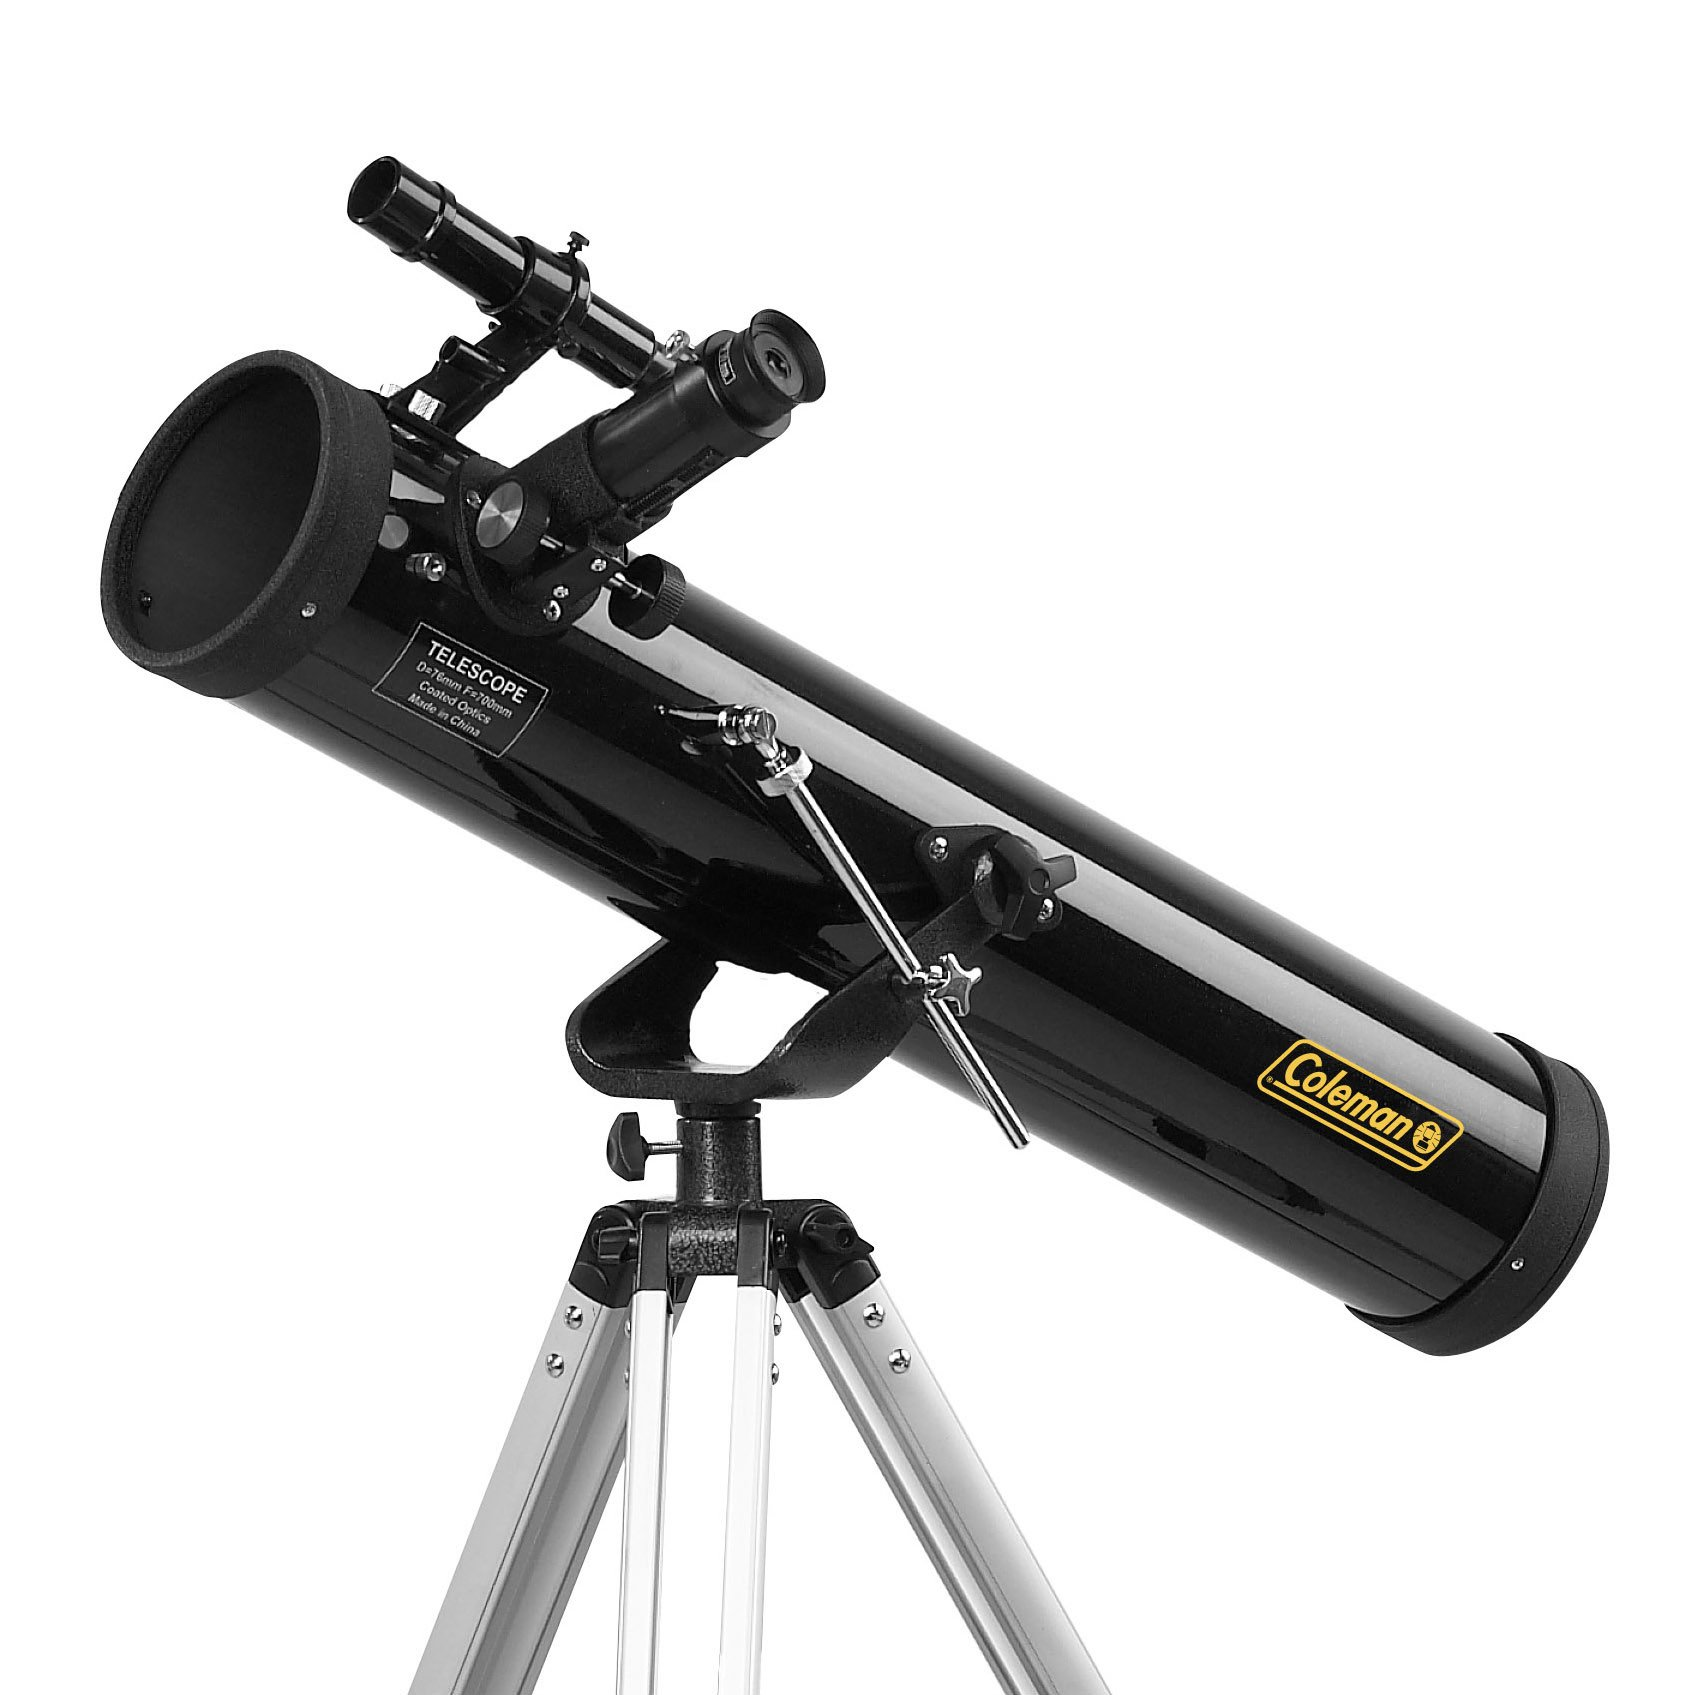 Coleman C767K AstroWatch 700x76 Reflector Telescope Kit with Tripod, Software and Hard Plastic Carrying Case (Black) by Coleman